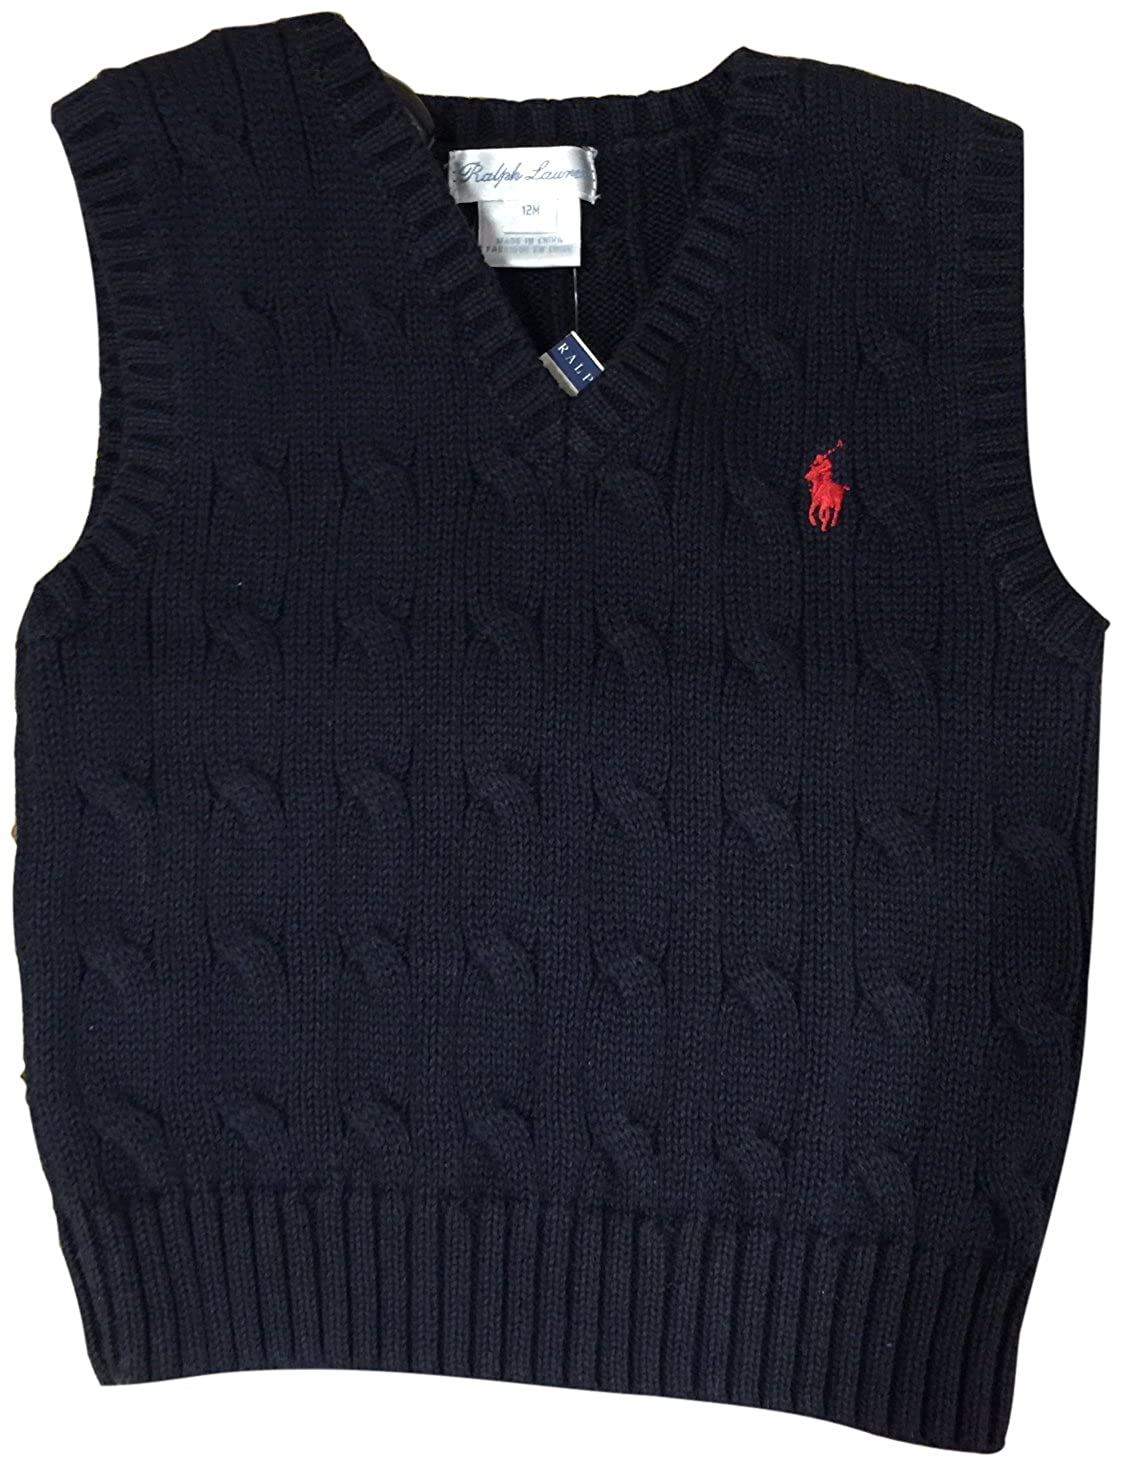 Polo Ralph Lauren Baby Boys' Cable-Knit Cotton Sweater Vest Hunter Navy